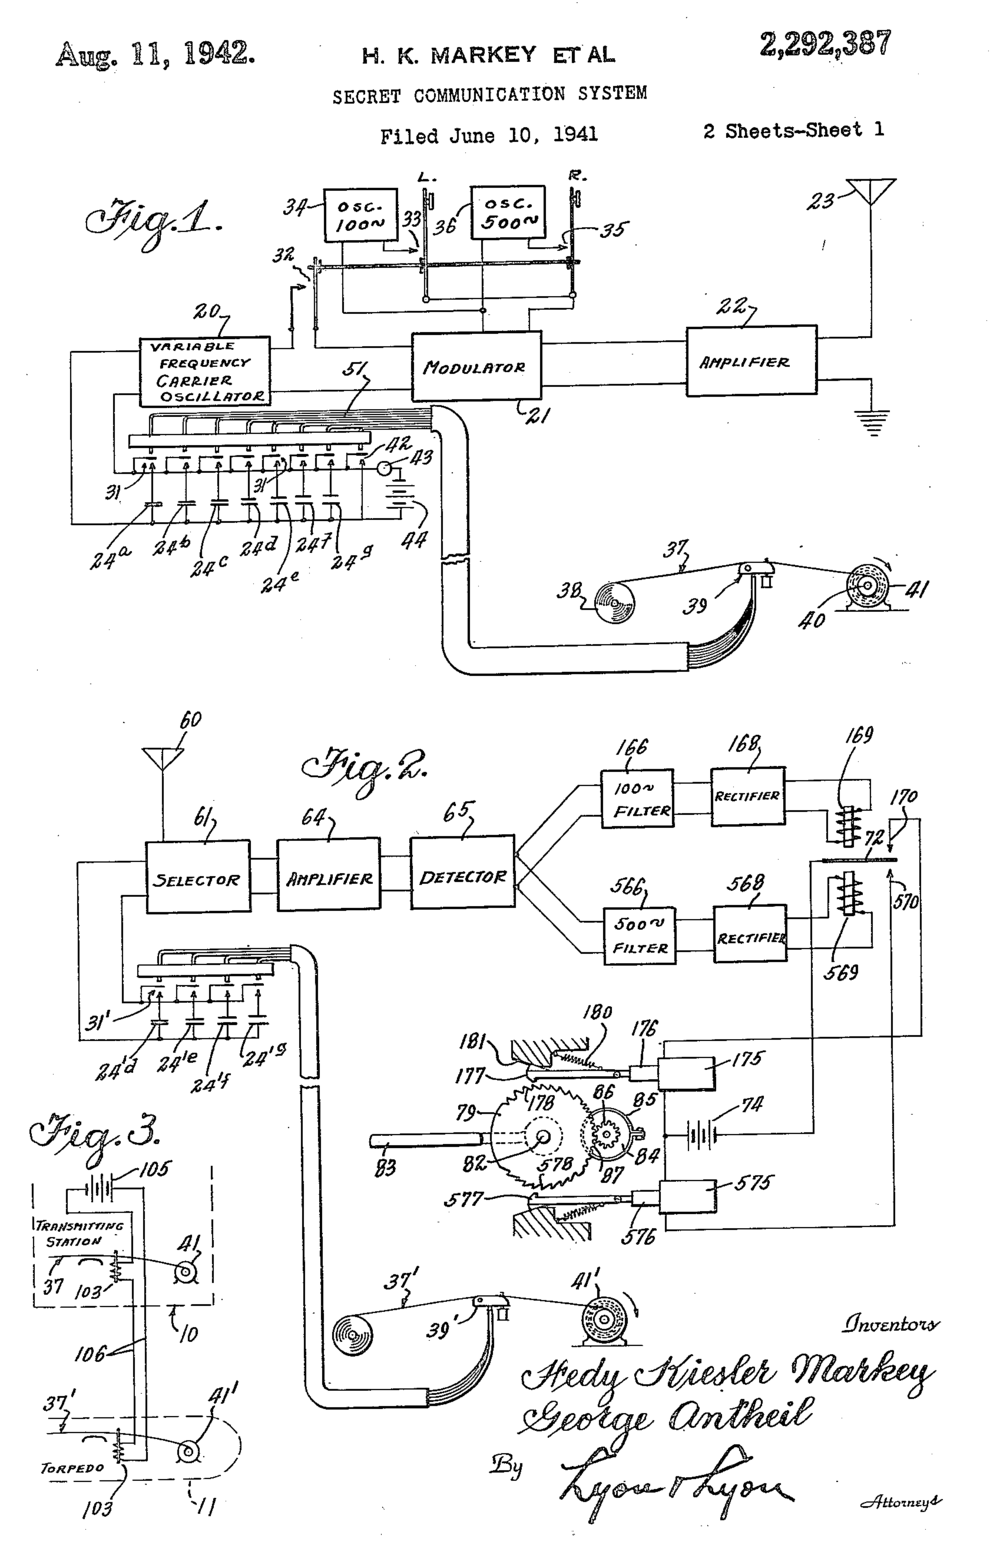 "[Figure 3] Figures 1-3 from Hedy Lamarr and George Antheil's patent for a ""Secret Communication System"" Image Source: U.S. Patent No. US2292387 A [6]."